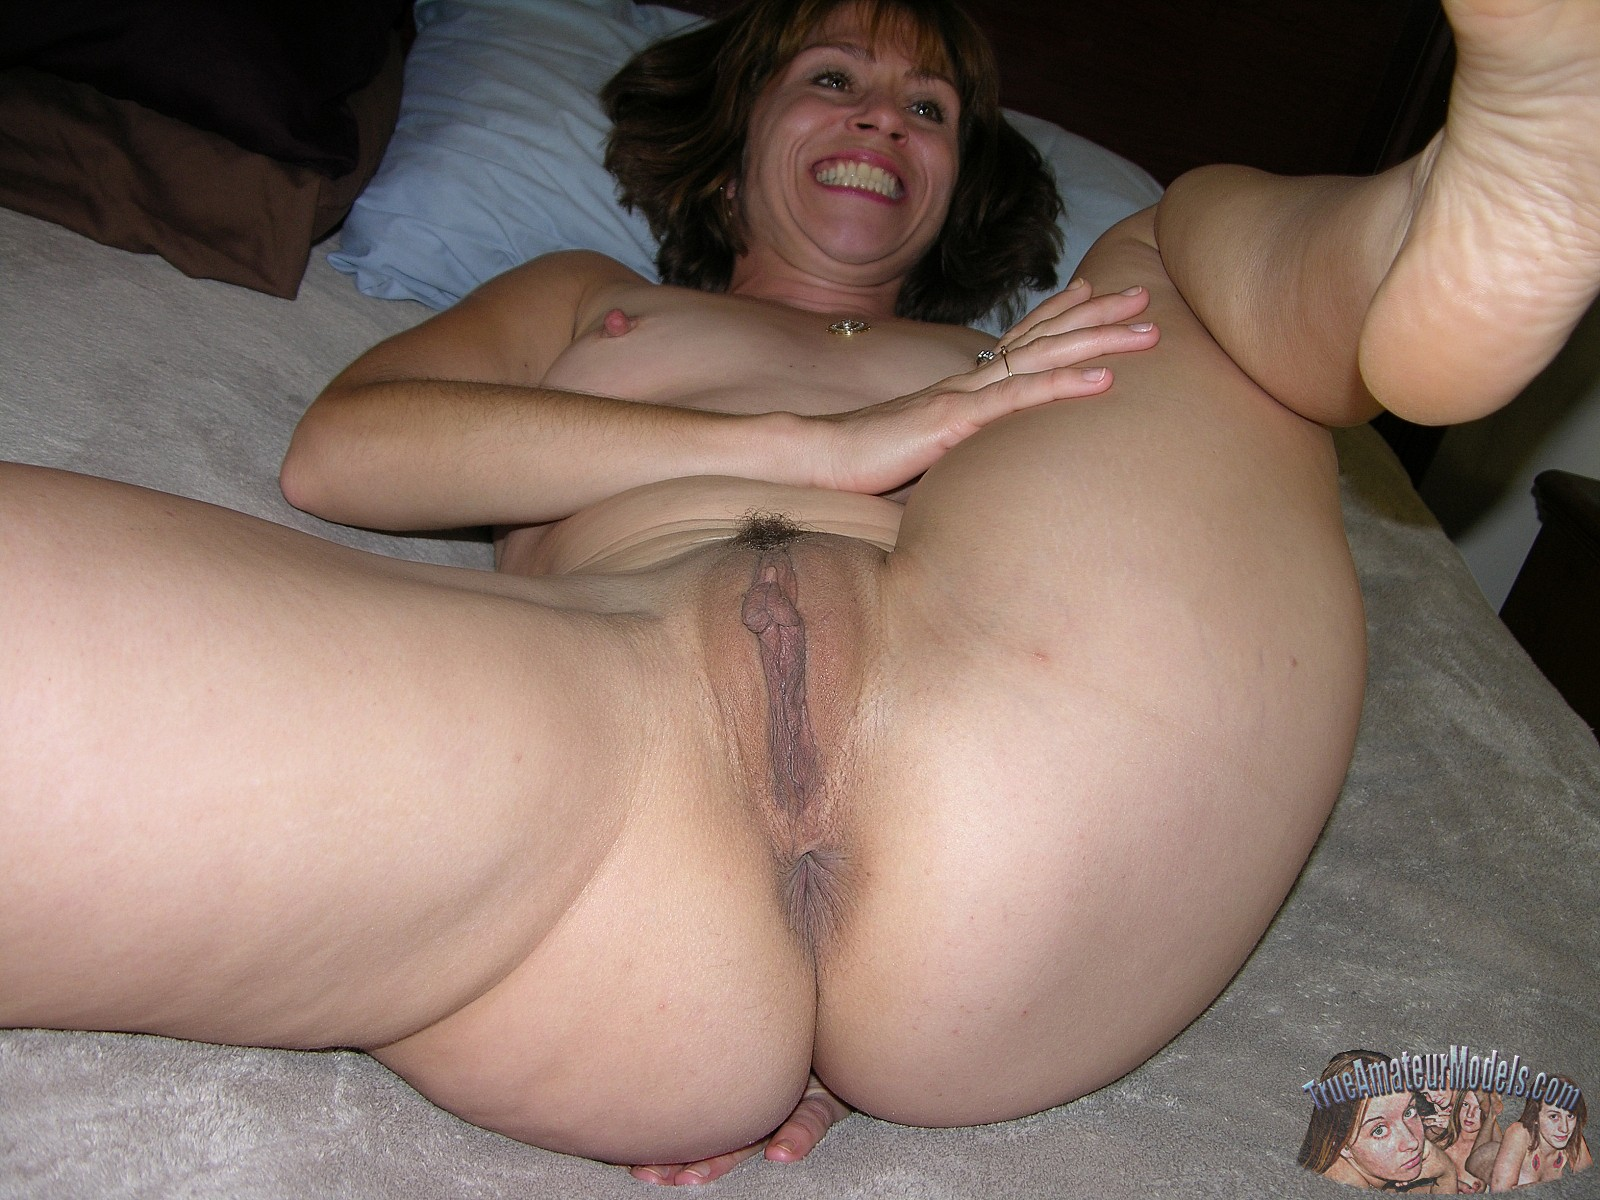 Talented Girl mature female naked wife